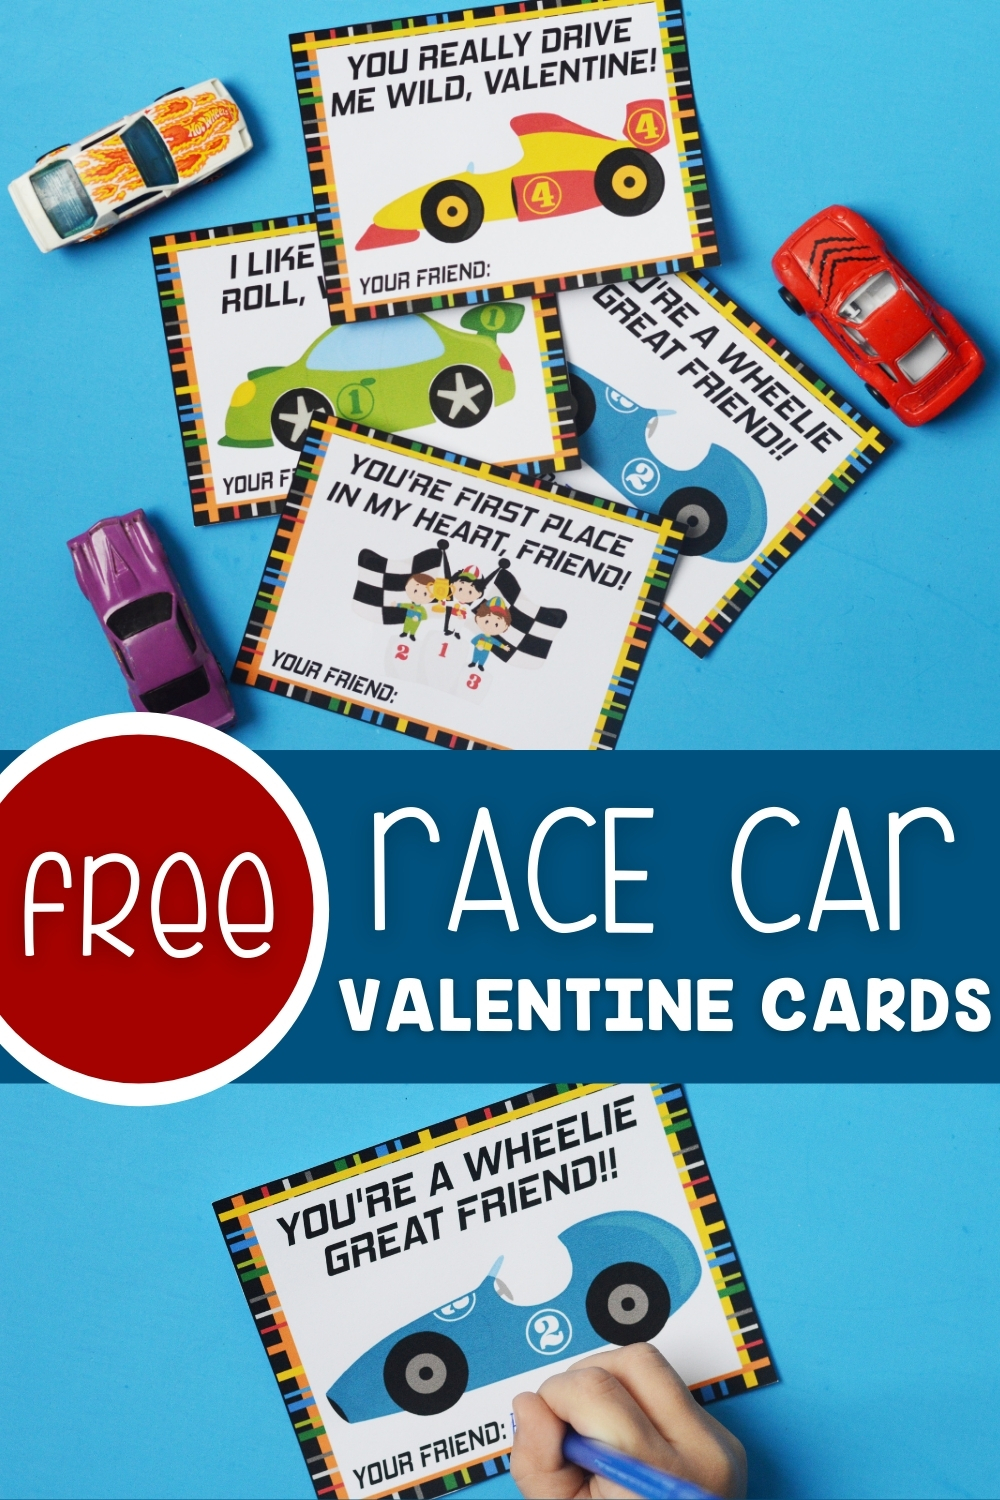 Free Race Car Valentine Cards